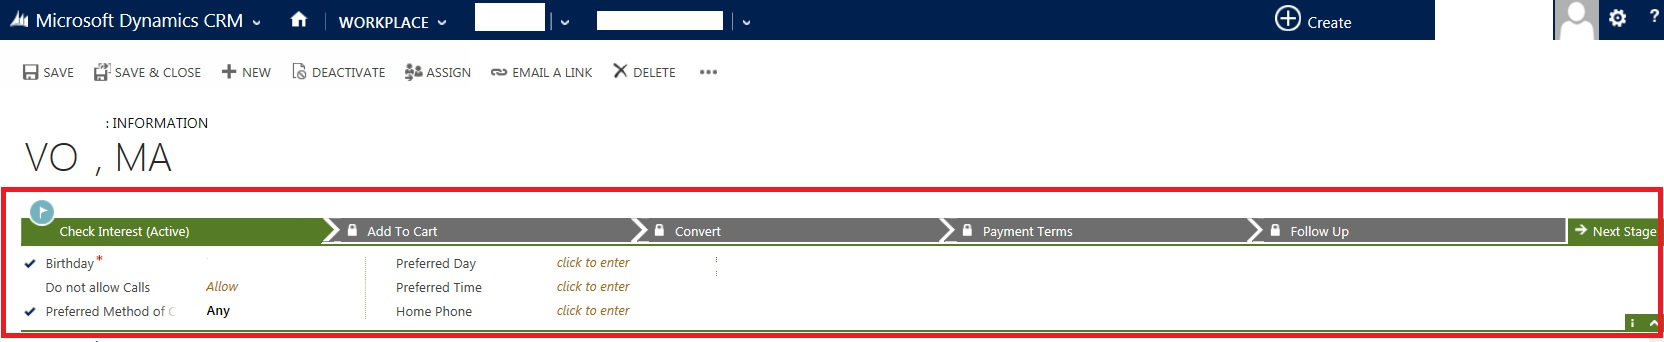 How to Disable the Process Header, collapsible Area, and Process Warning Bar from Contacts Form of CRM 2013